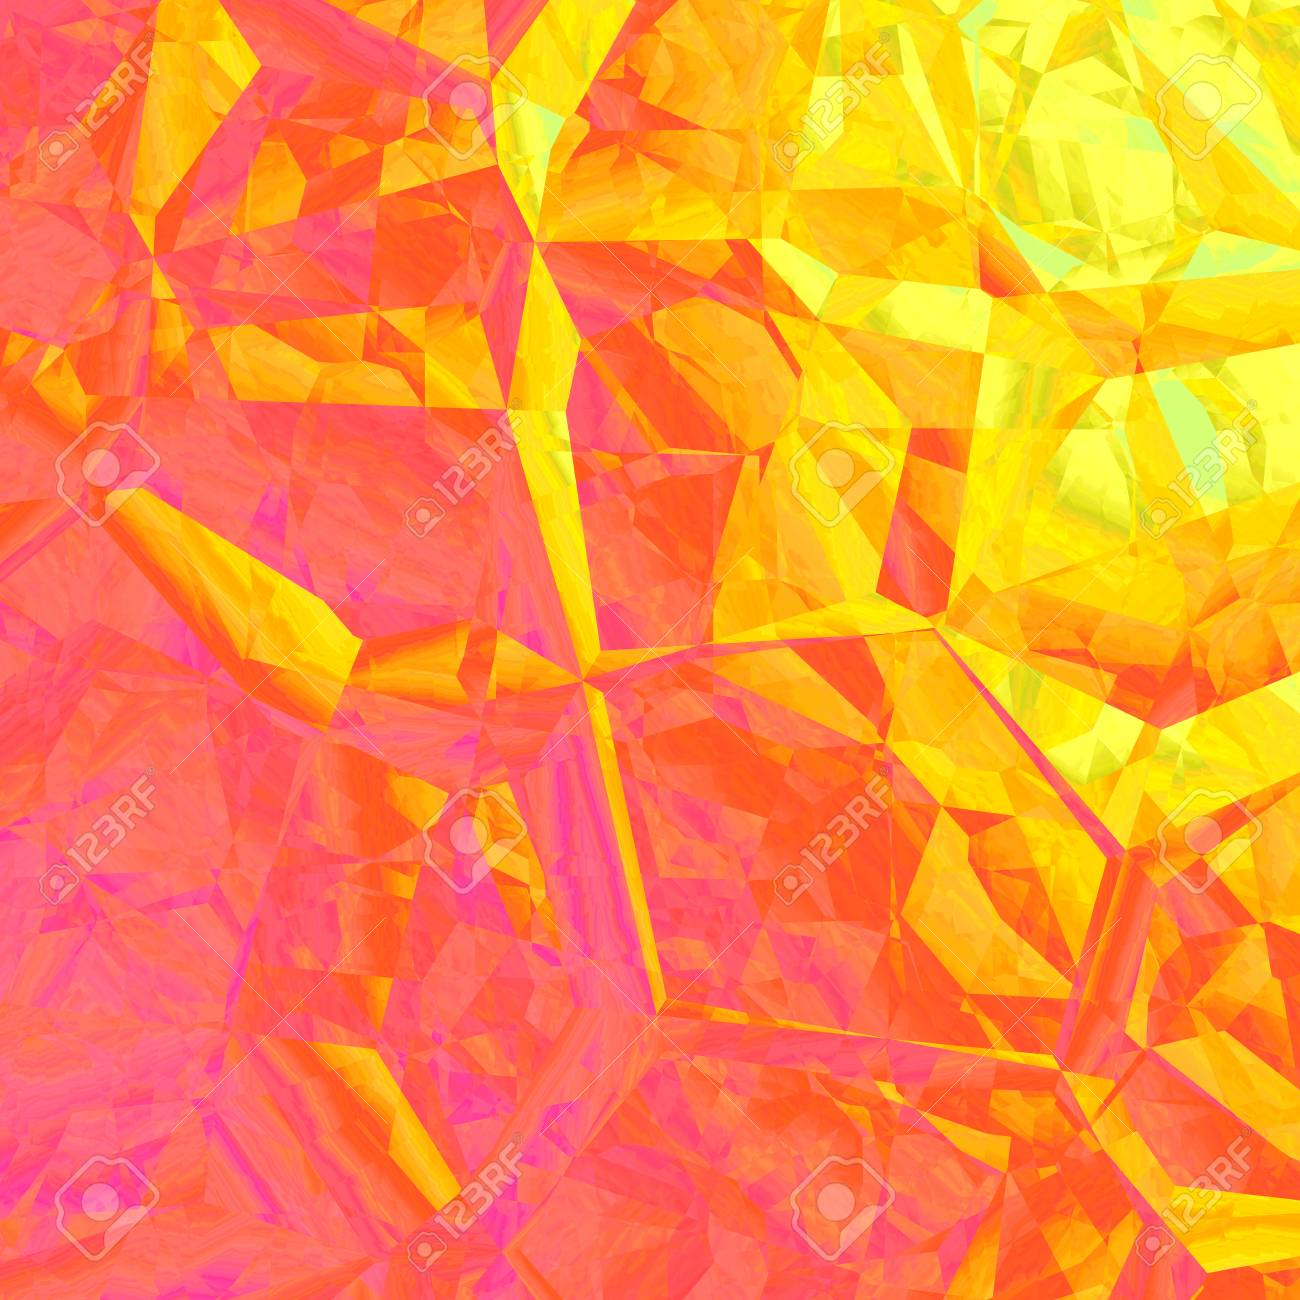 Yellow Orange Abstract Geometrical Background Design Graphic